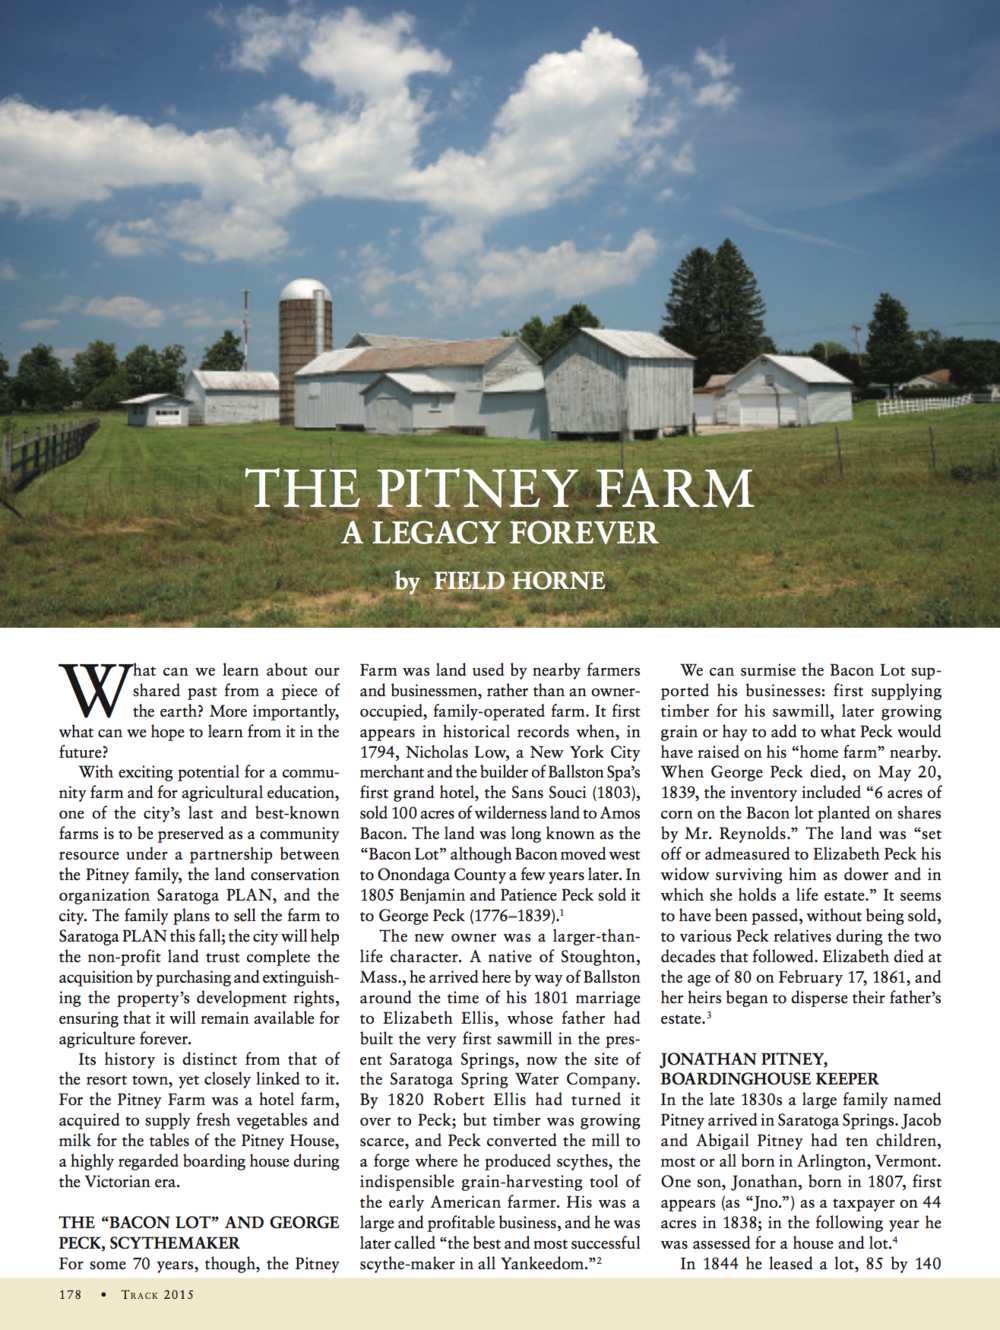 Click above to read field horne's  history of Pitney farm published in  Saratoga Living.